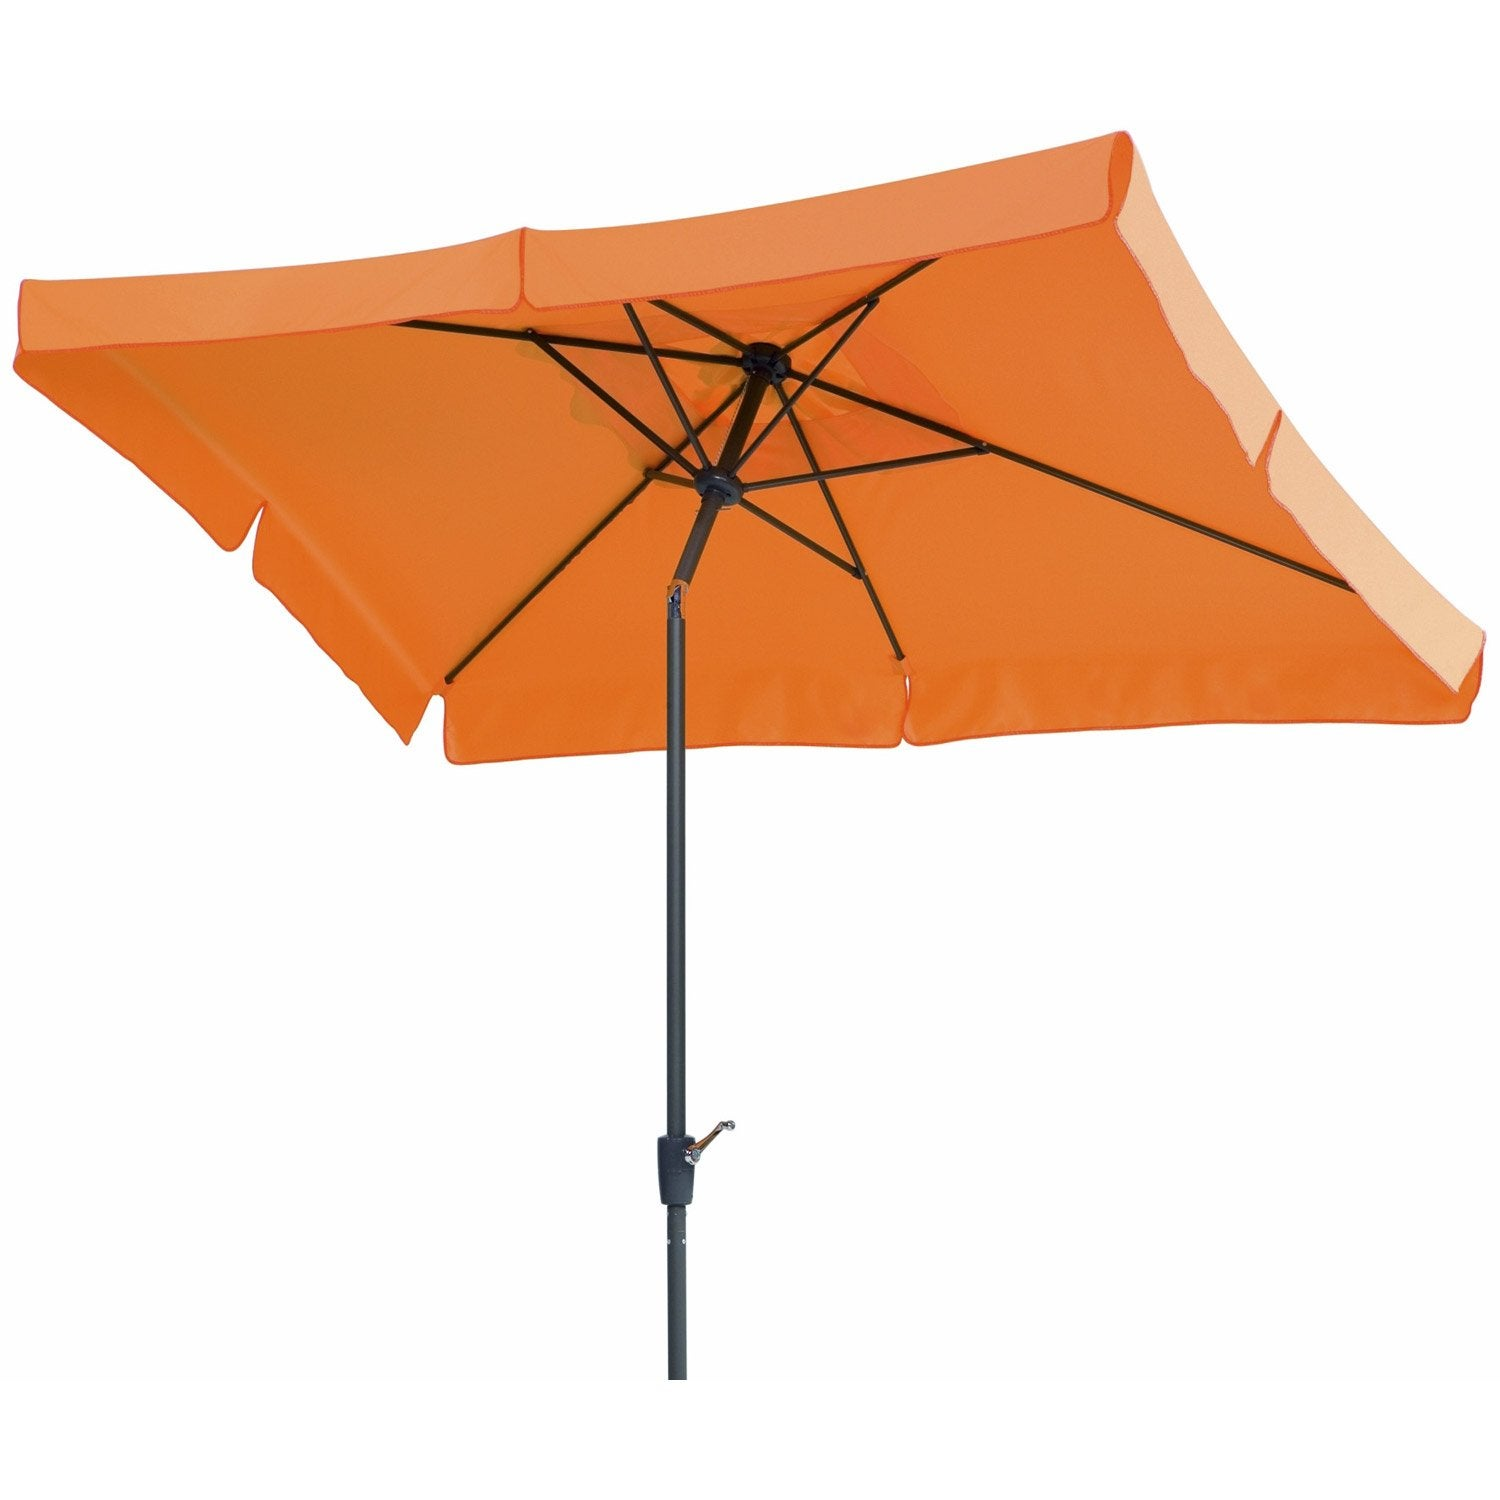 Leroy merlin parasol d port fashion designs - Parasol chauffant castorama ...